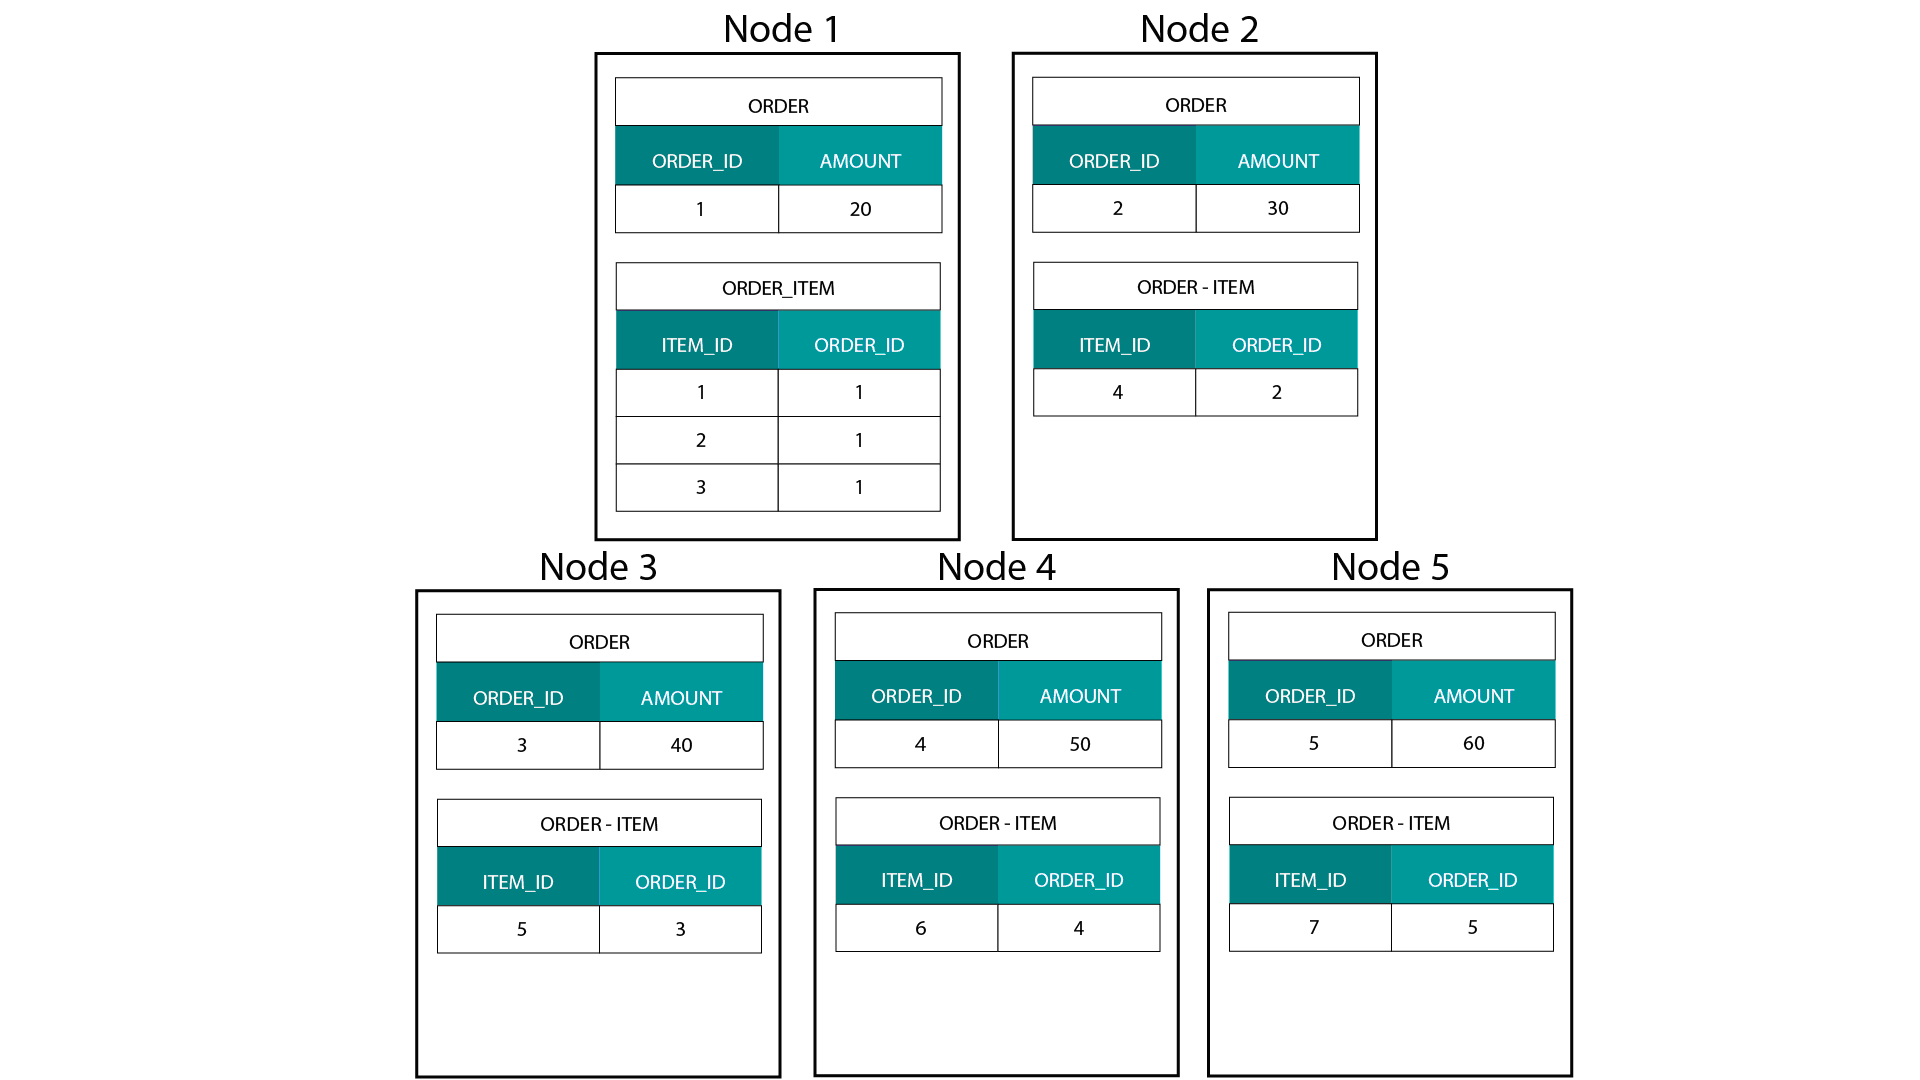 hight resolution of keys for order id of order and order item table are co located on the same nodes